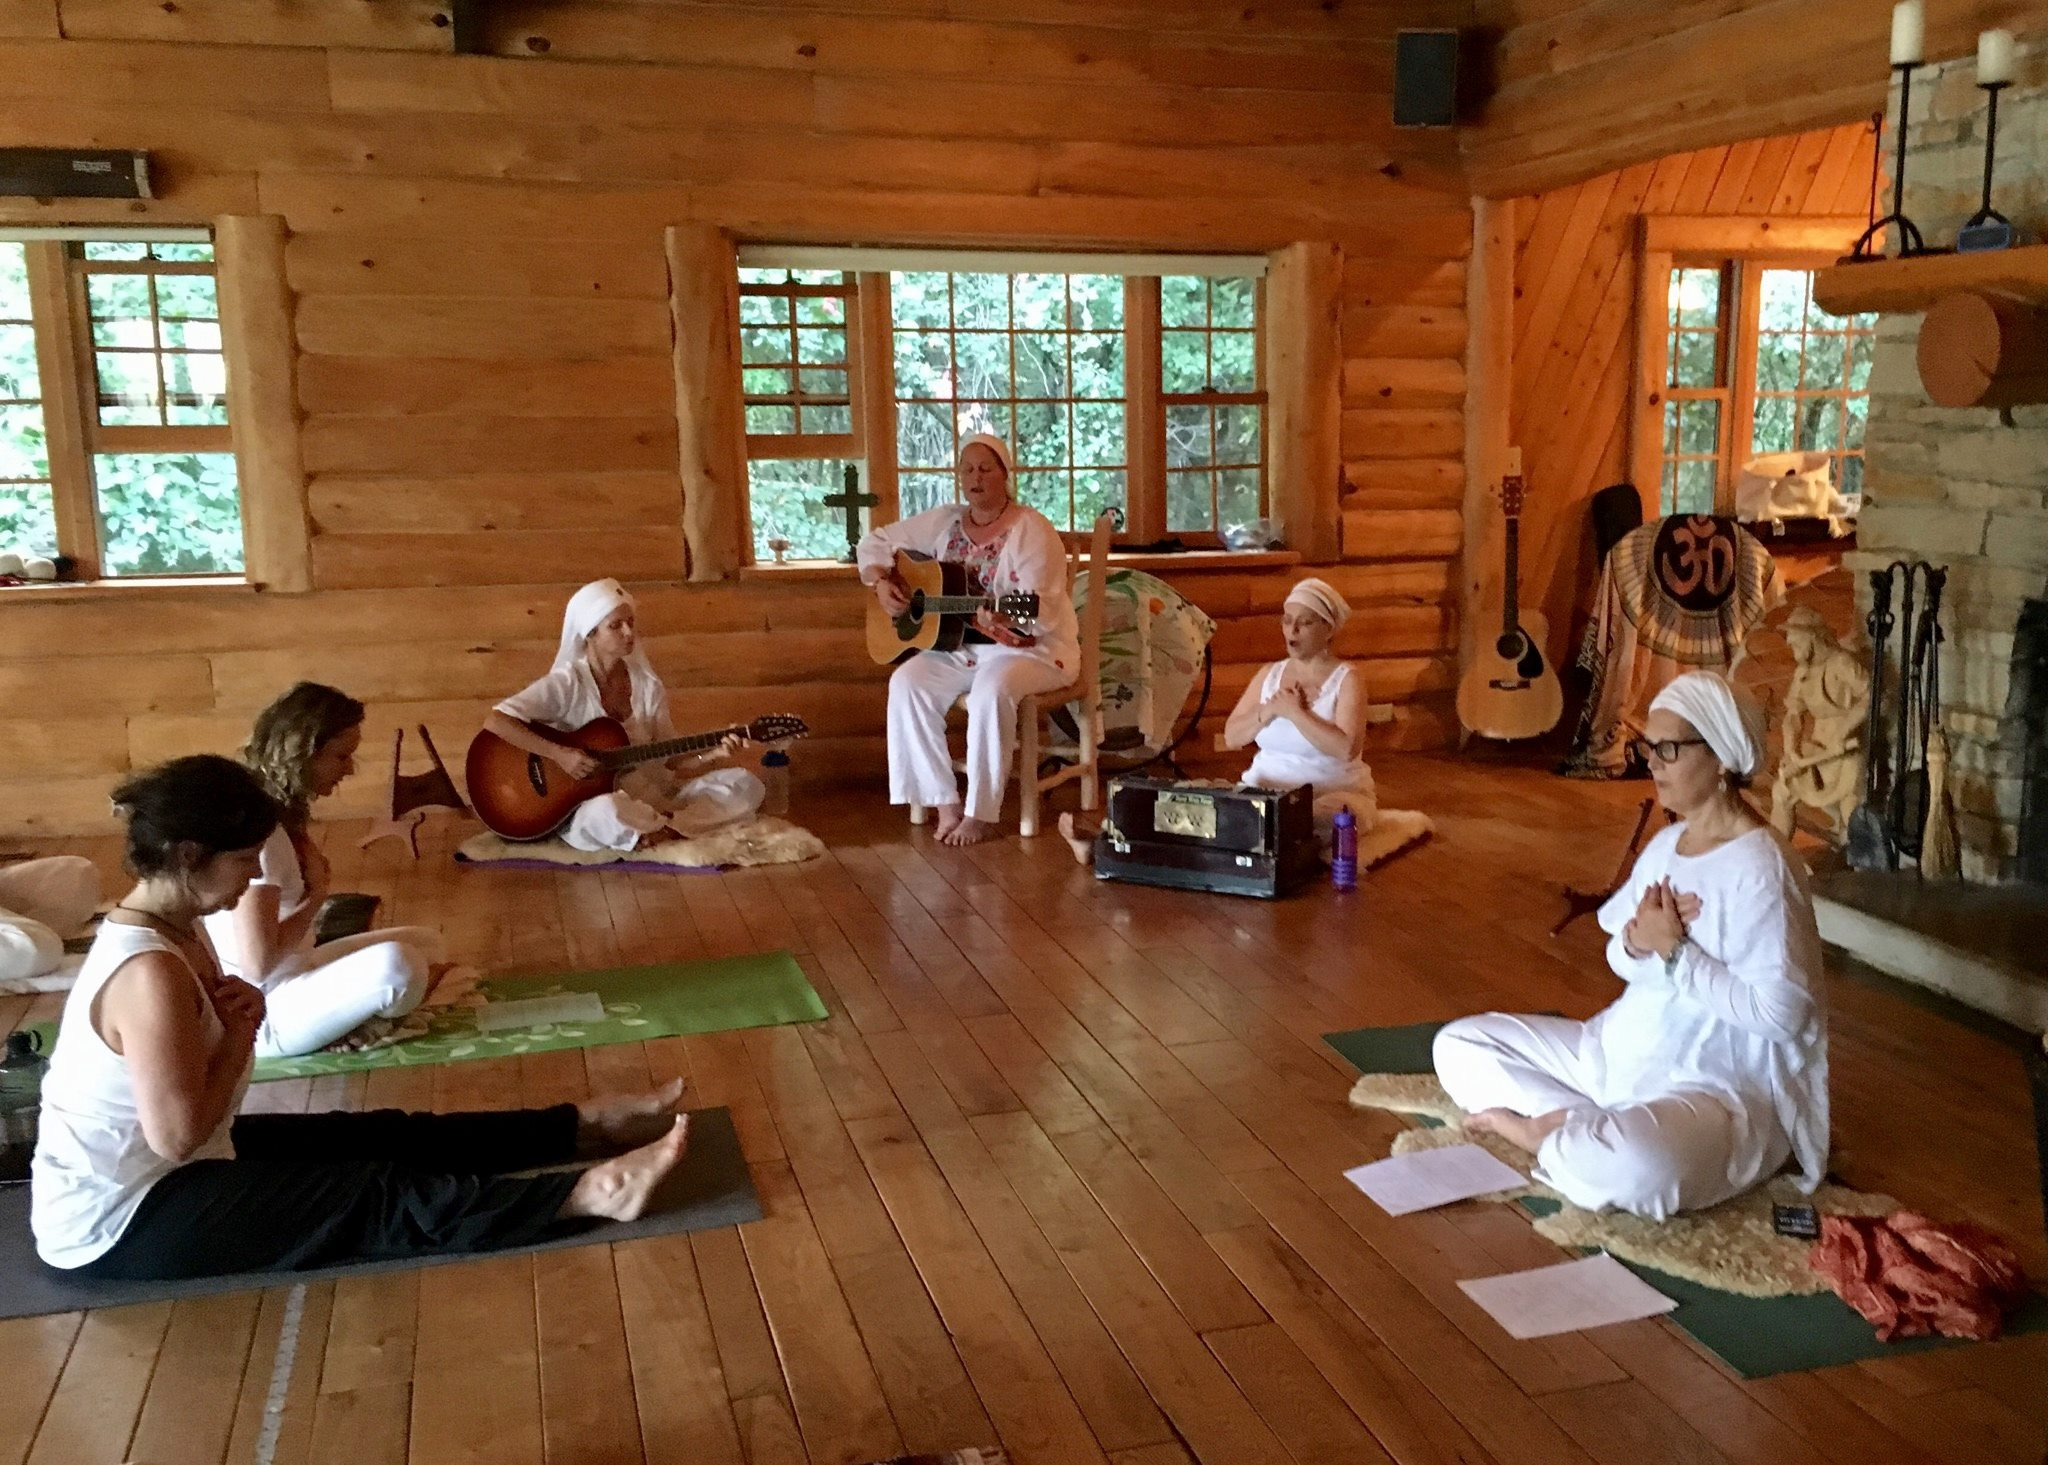 Ajeetpal Kaur leading Meditations with Preet .jpg